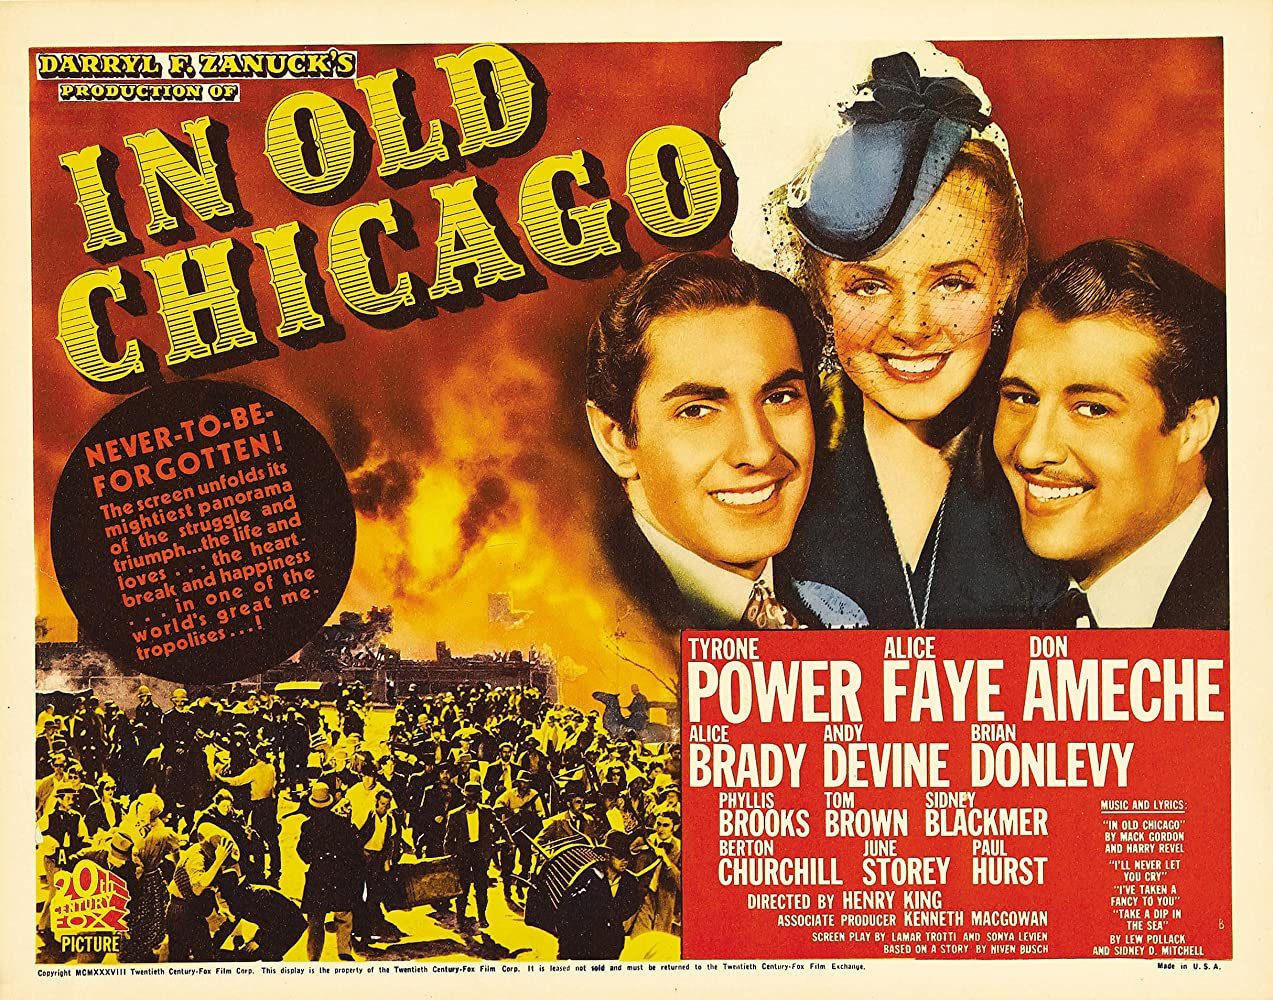 Tyrone Power, Don Ameche, and Alice Faye in In Old Chicago (1938)